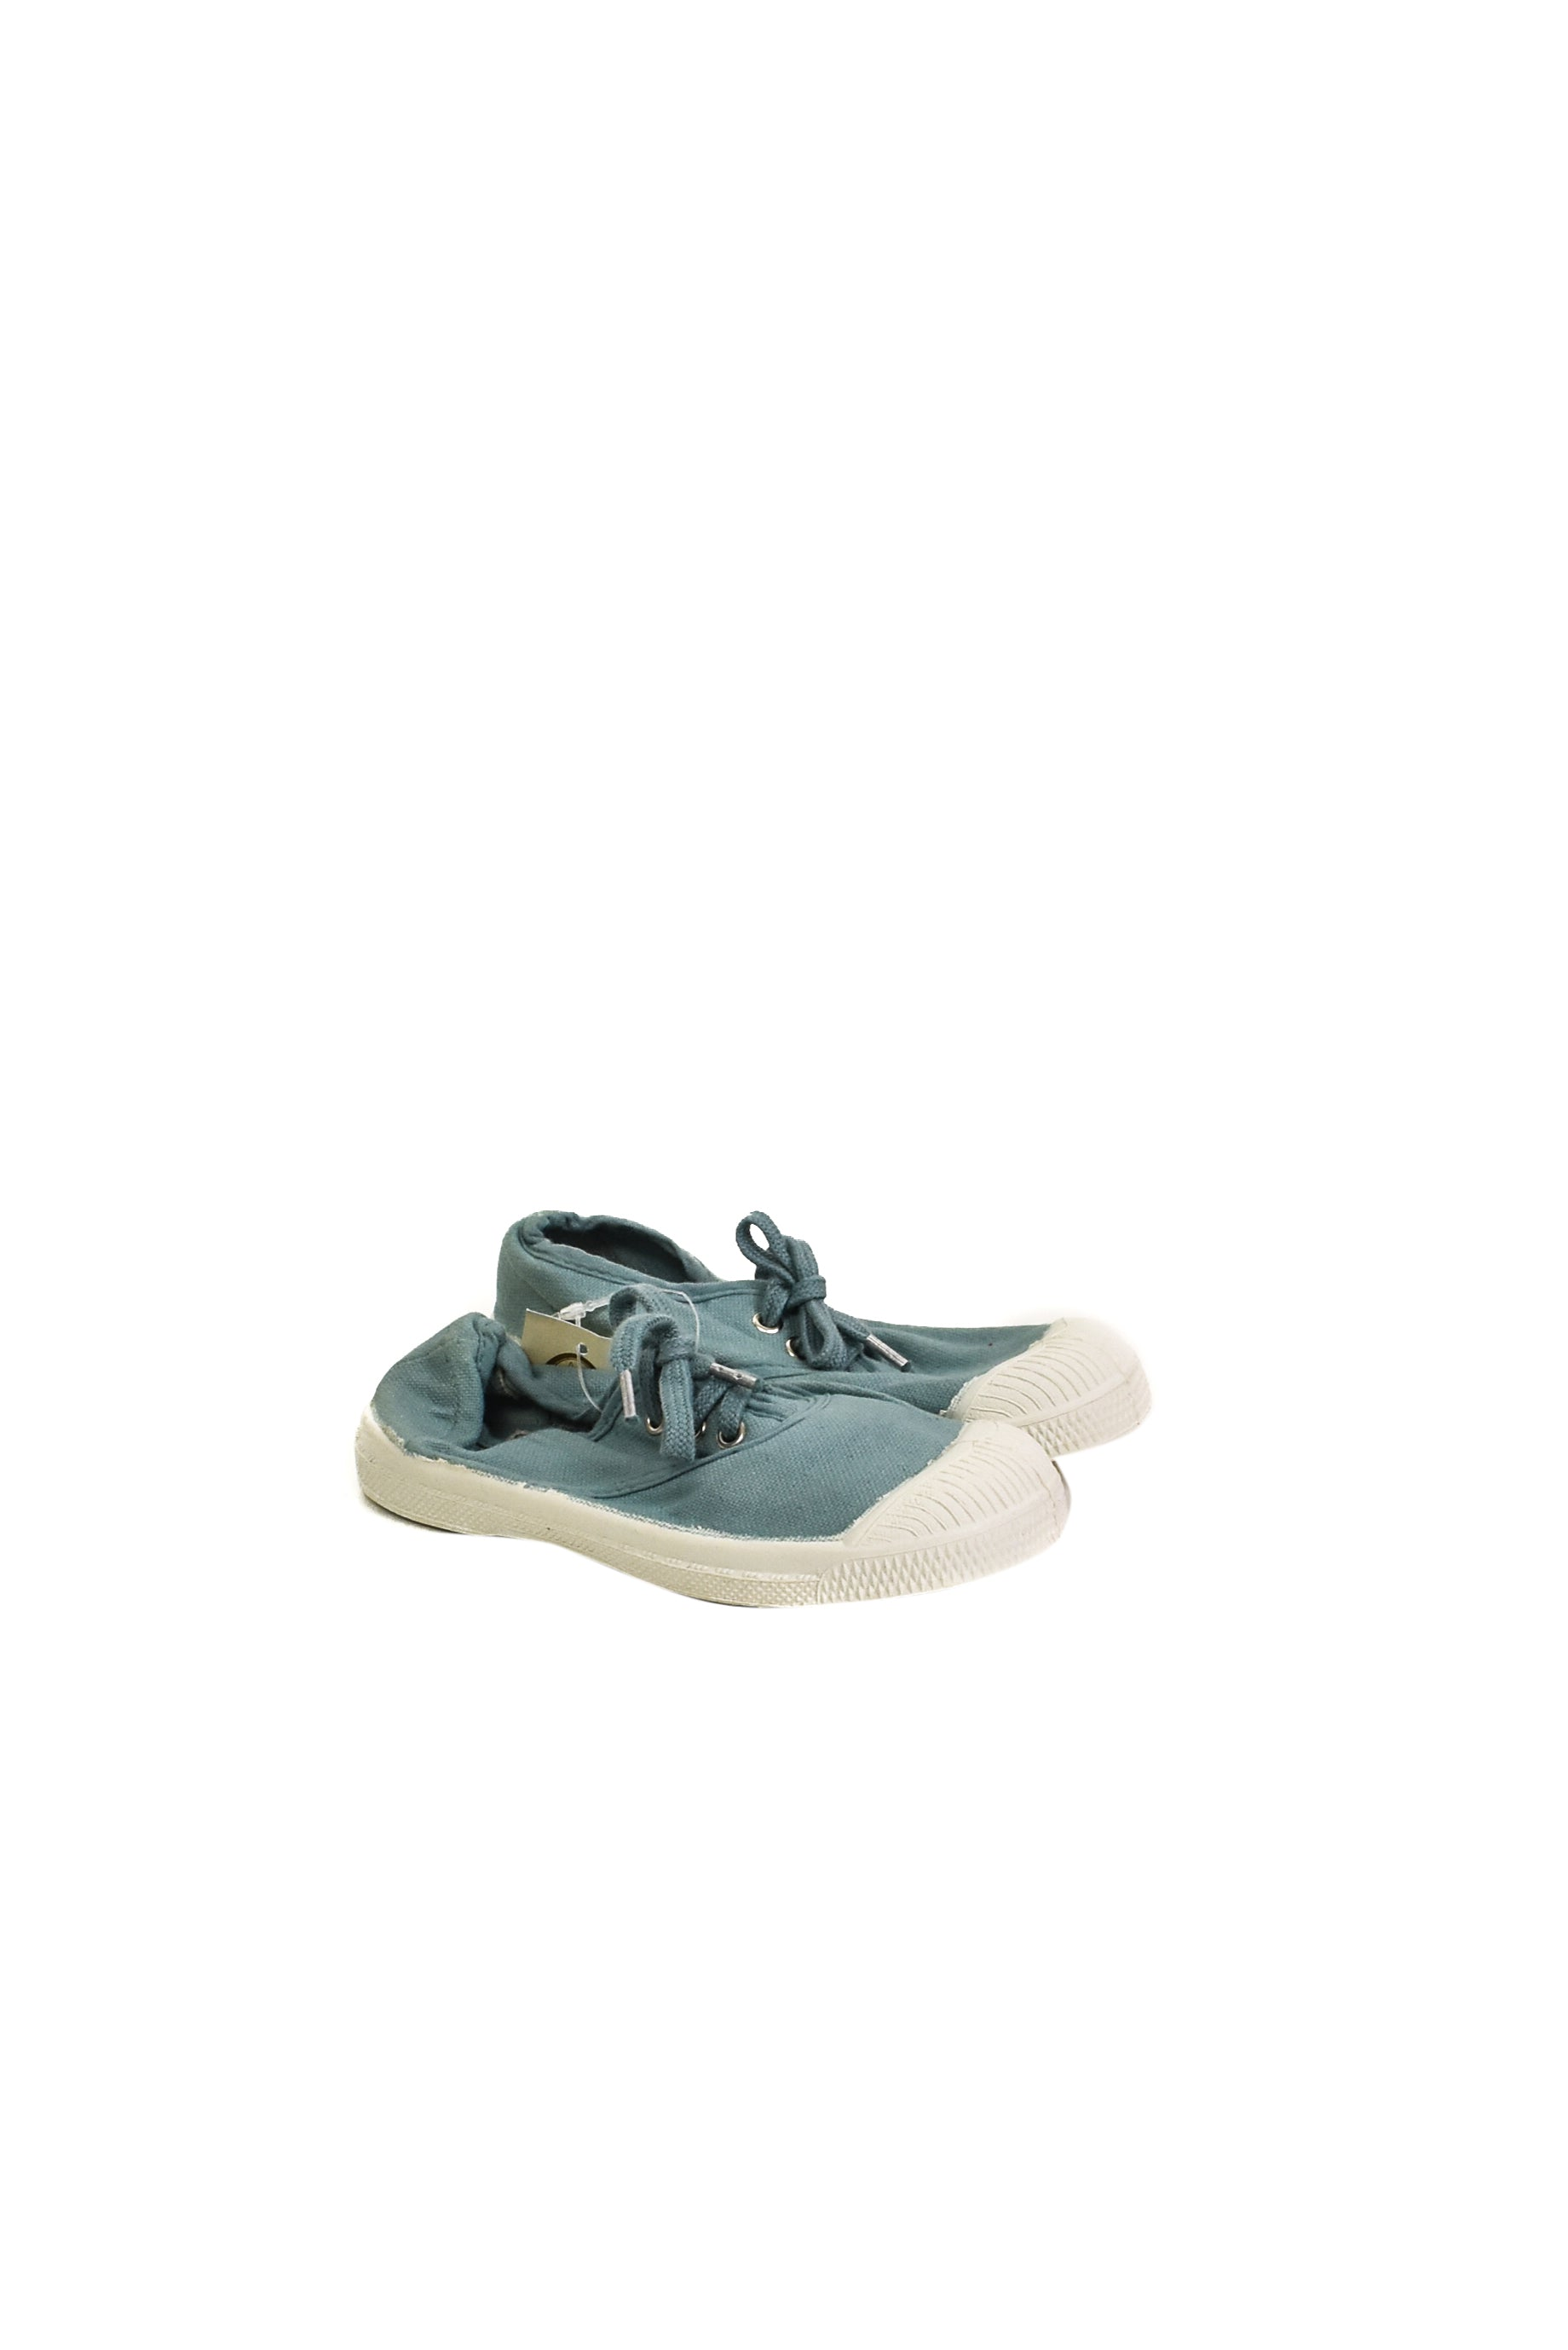 10013769 Bensimon Bonpoint Kids ~ Shoes 3T (EU 25 / US 8) at Retykle